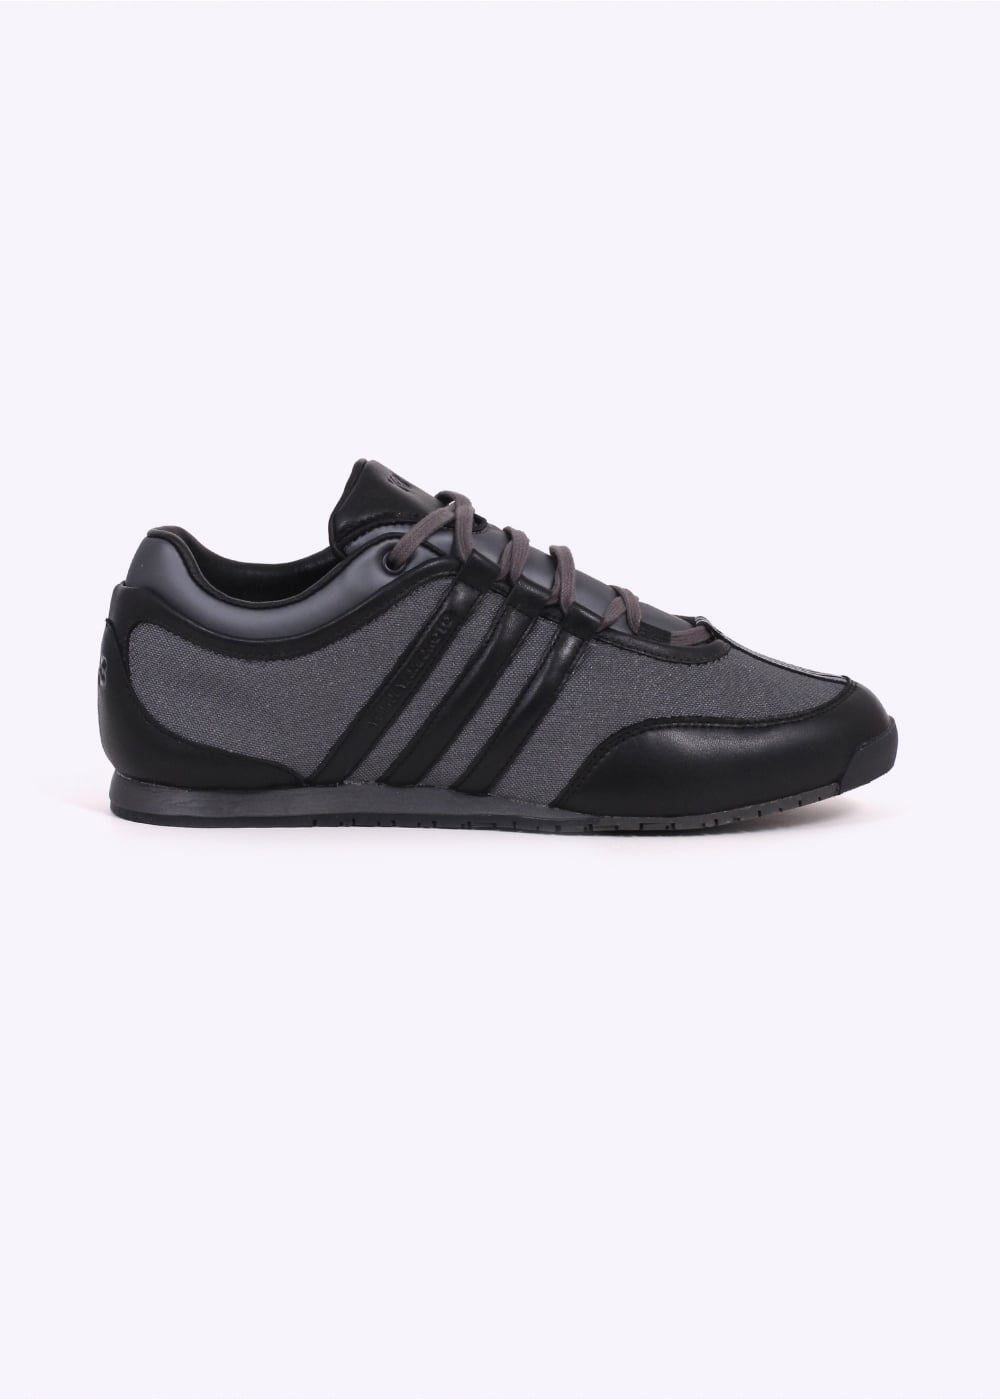 39f71293f7bd Y3   Adidas - Yohji Yamamoto Boxing Trainers - Black   Grey - Triads Mens  from Triads UK